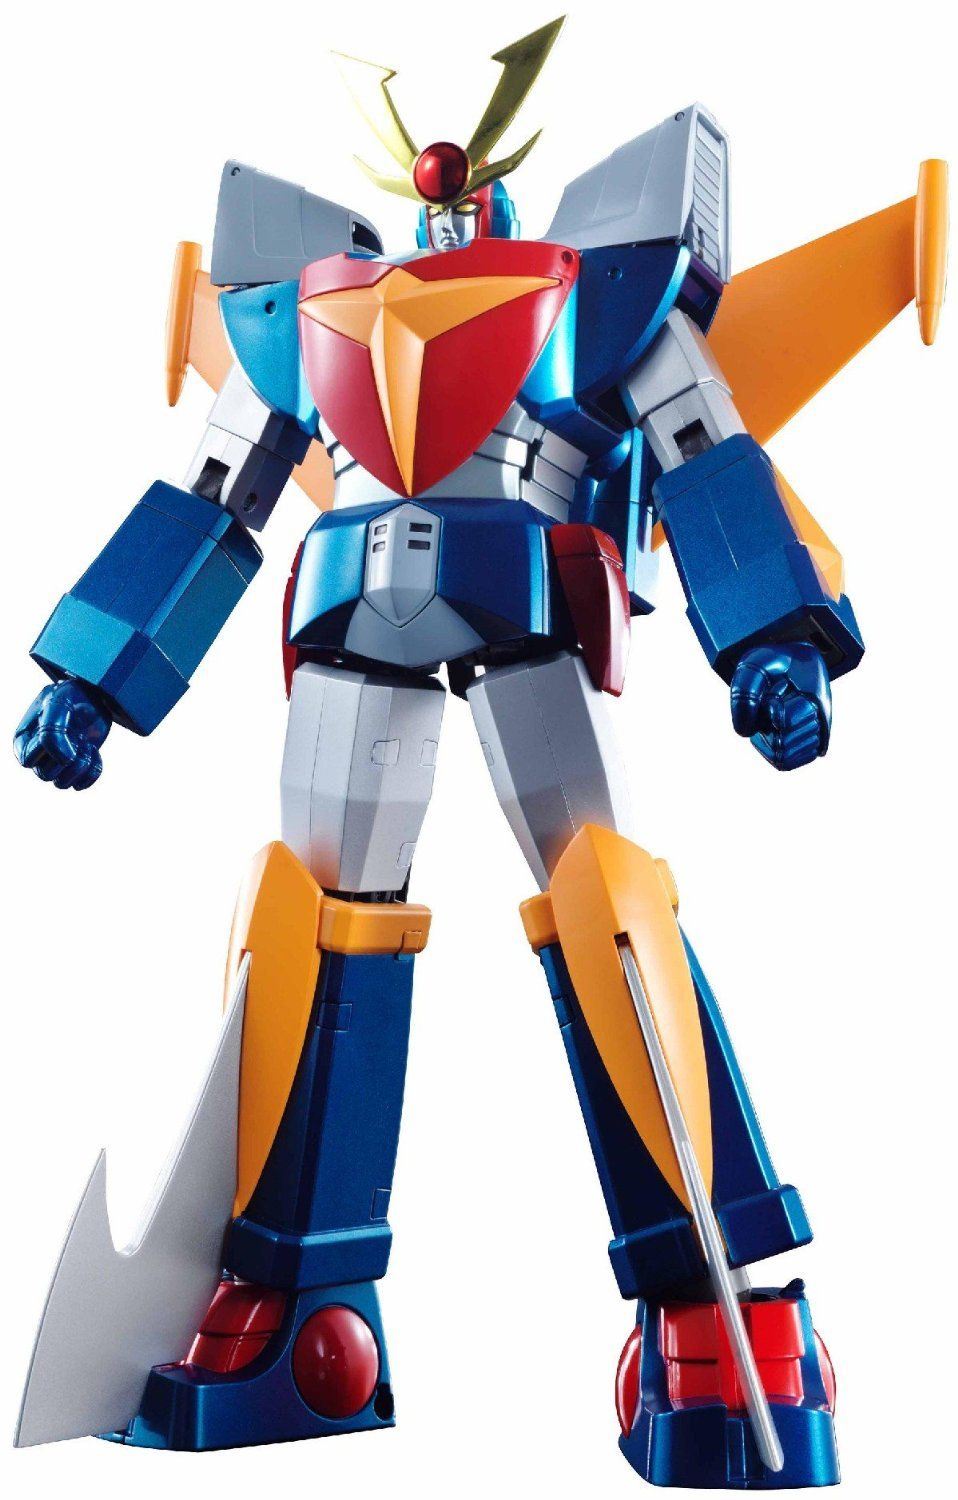 Bandai - GX-65 Daitarn 3 Renewal Color Ver Soul Of Chogokin: Amazon.it: Giochi e giocattoli